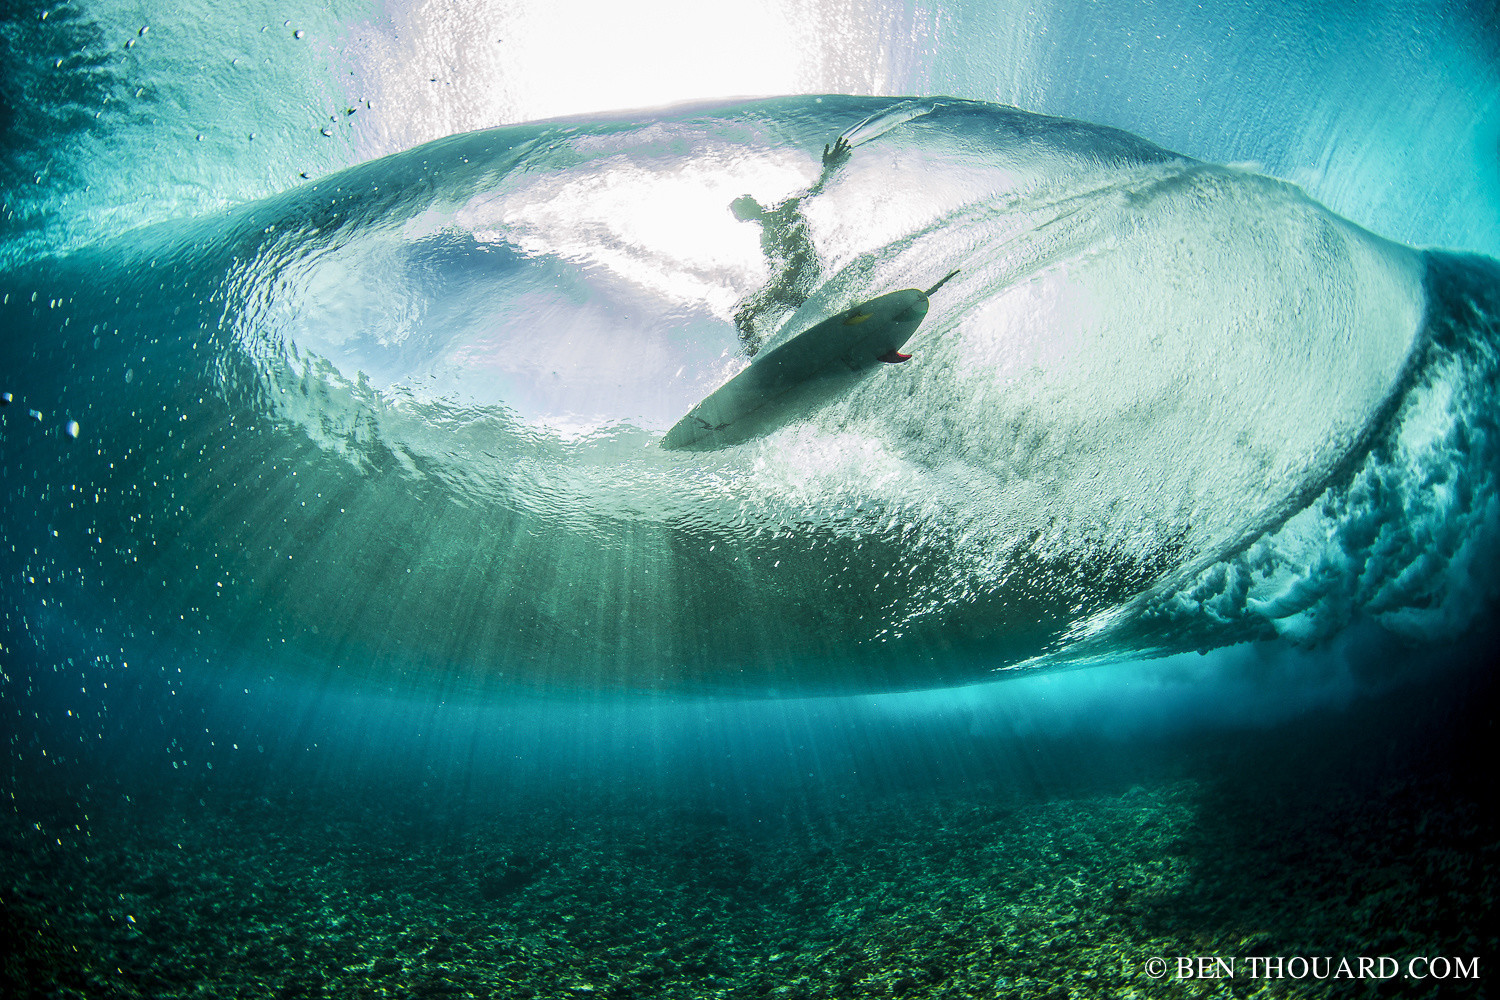 Best of 2015: Top 10 Underwater Photos